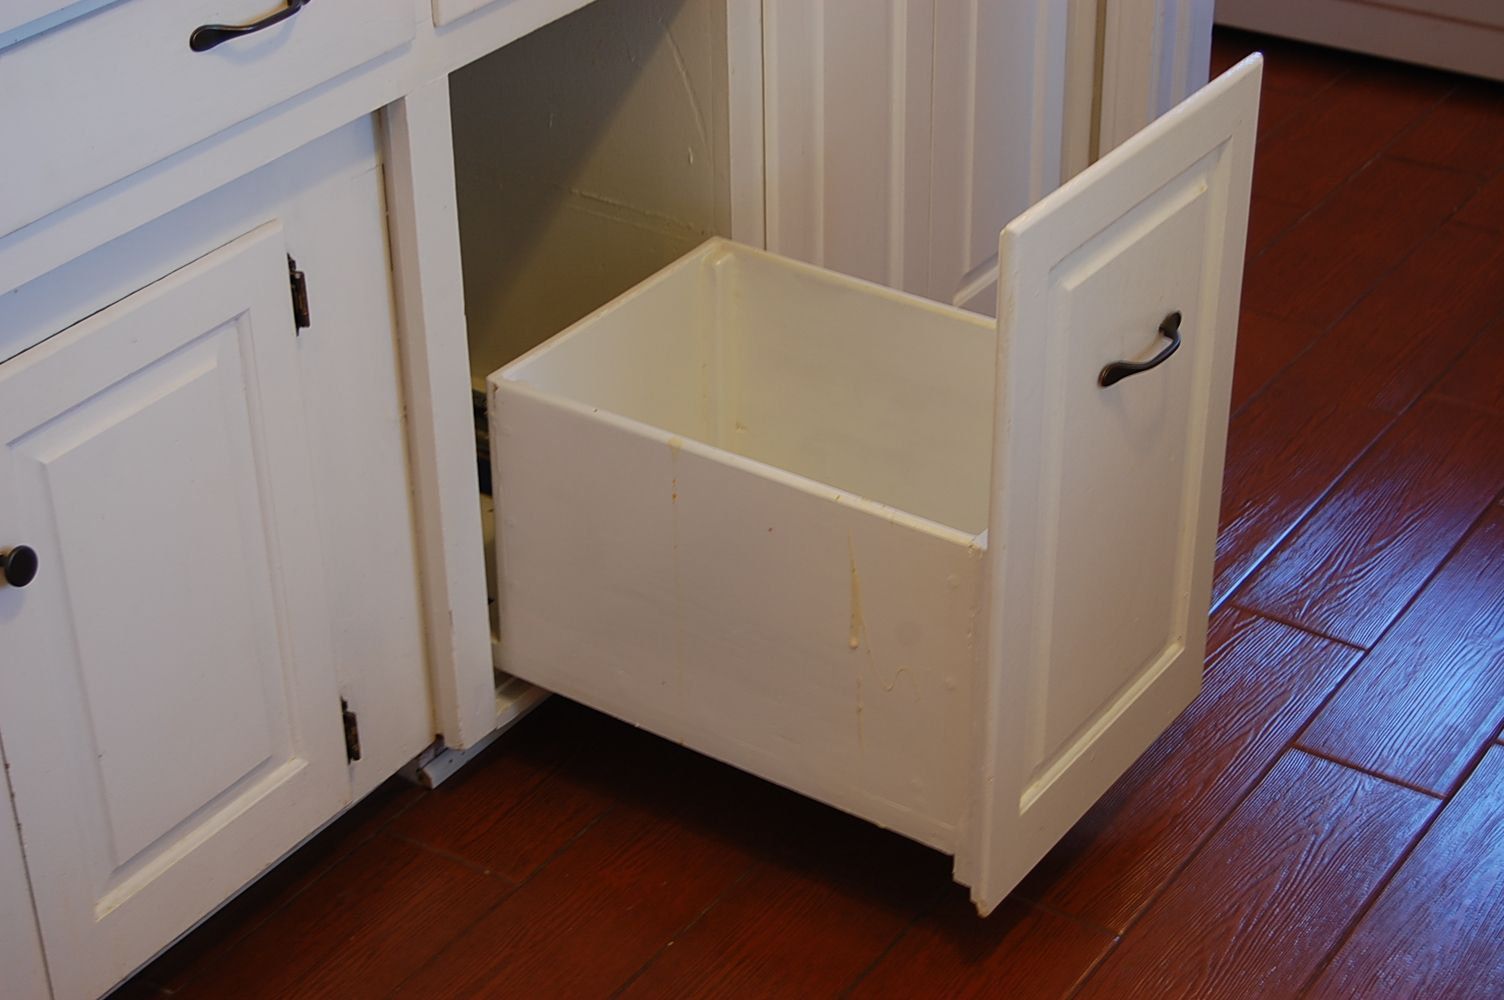 Slide Out Trash Can Drawer To Put In Place Of The Removed Dishwasher Link